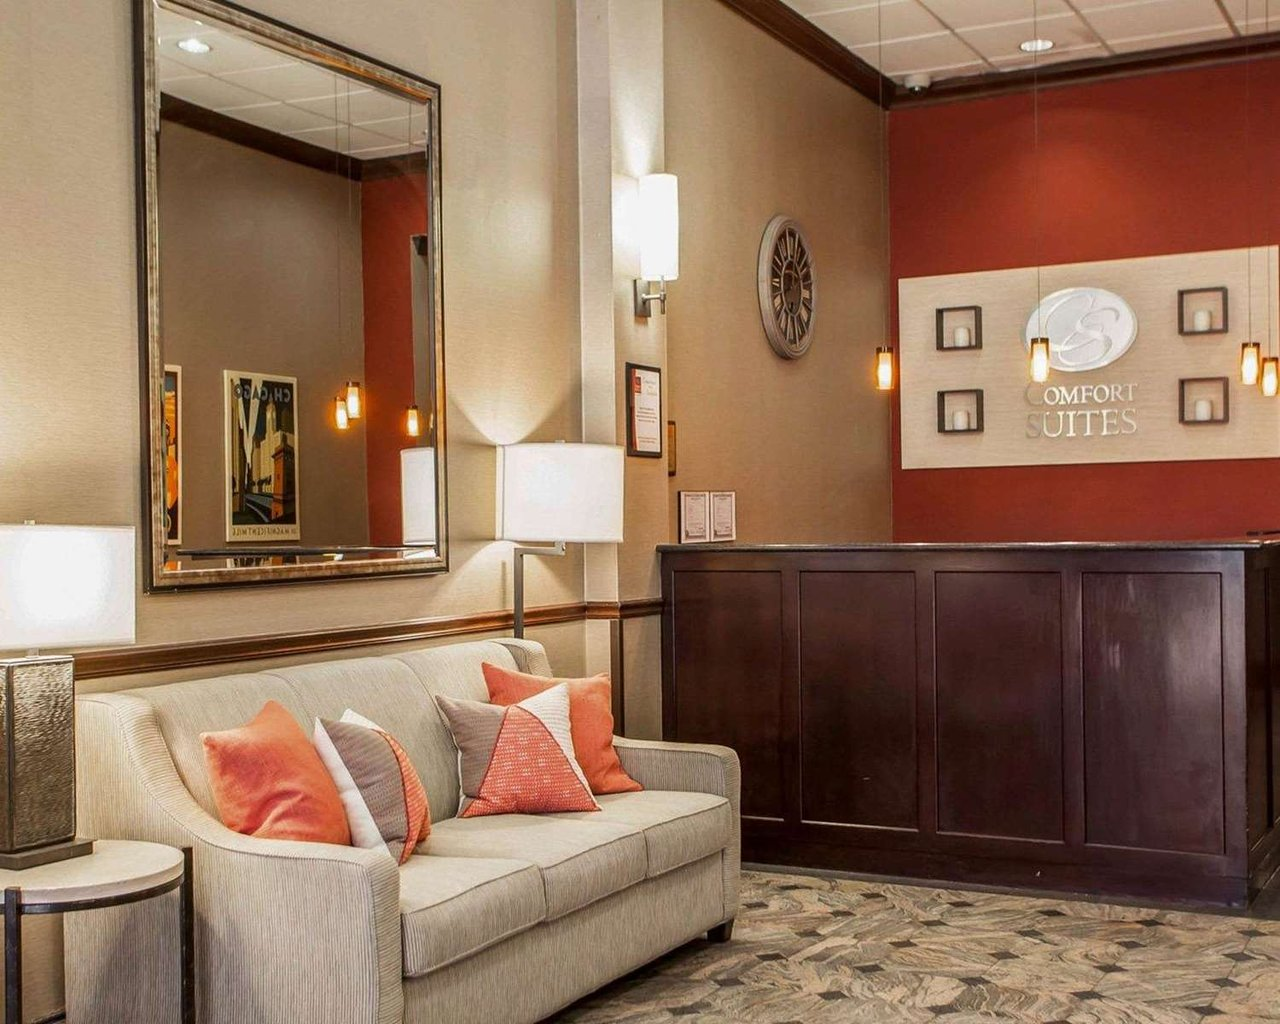 Comfort Suites Michigan Avenue Loop 149 1 7 8 Updated 2019